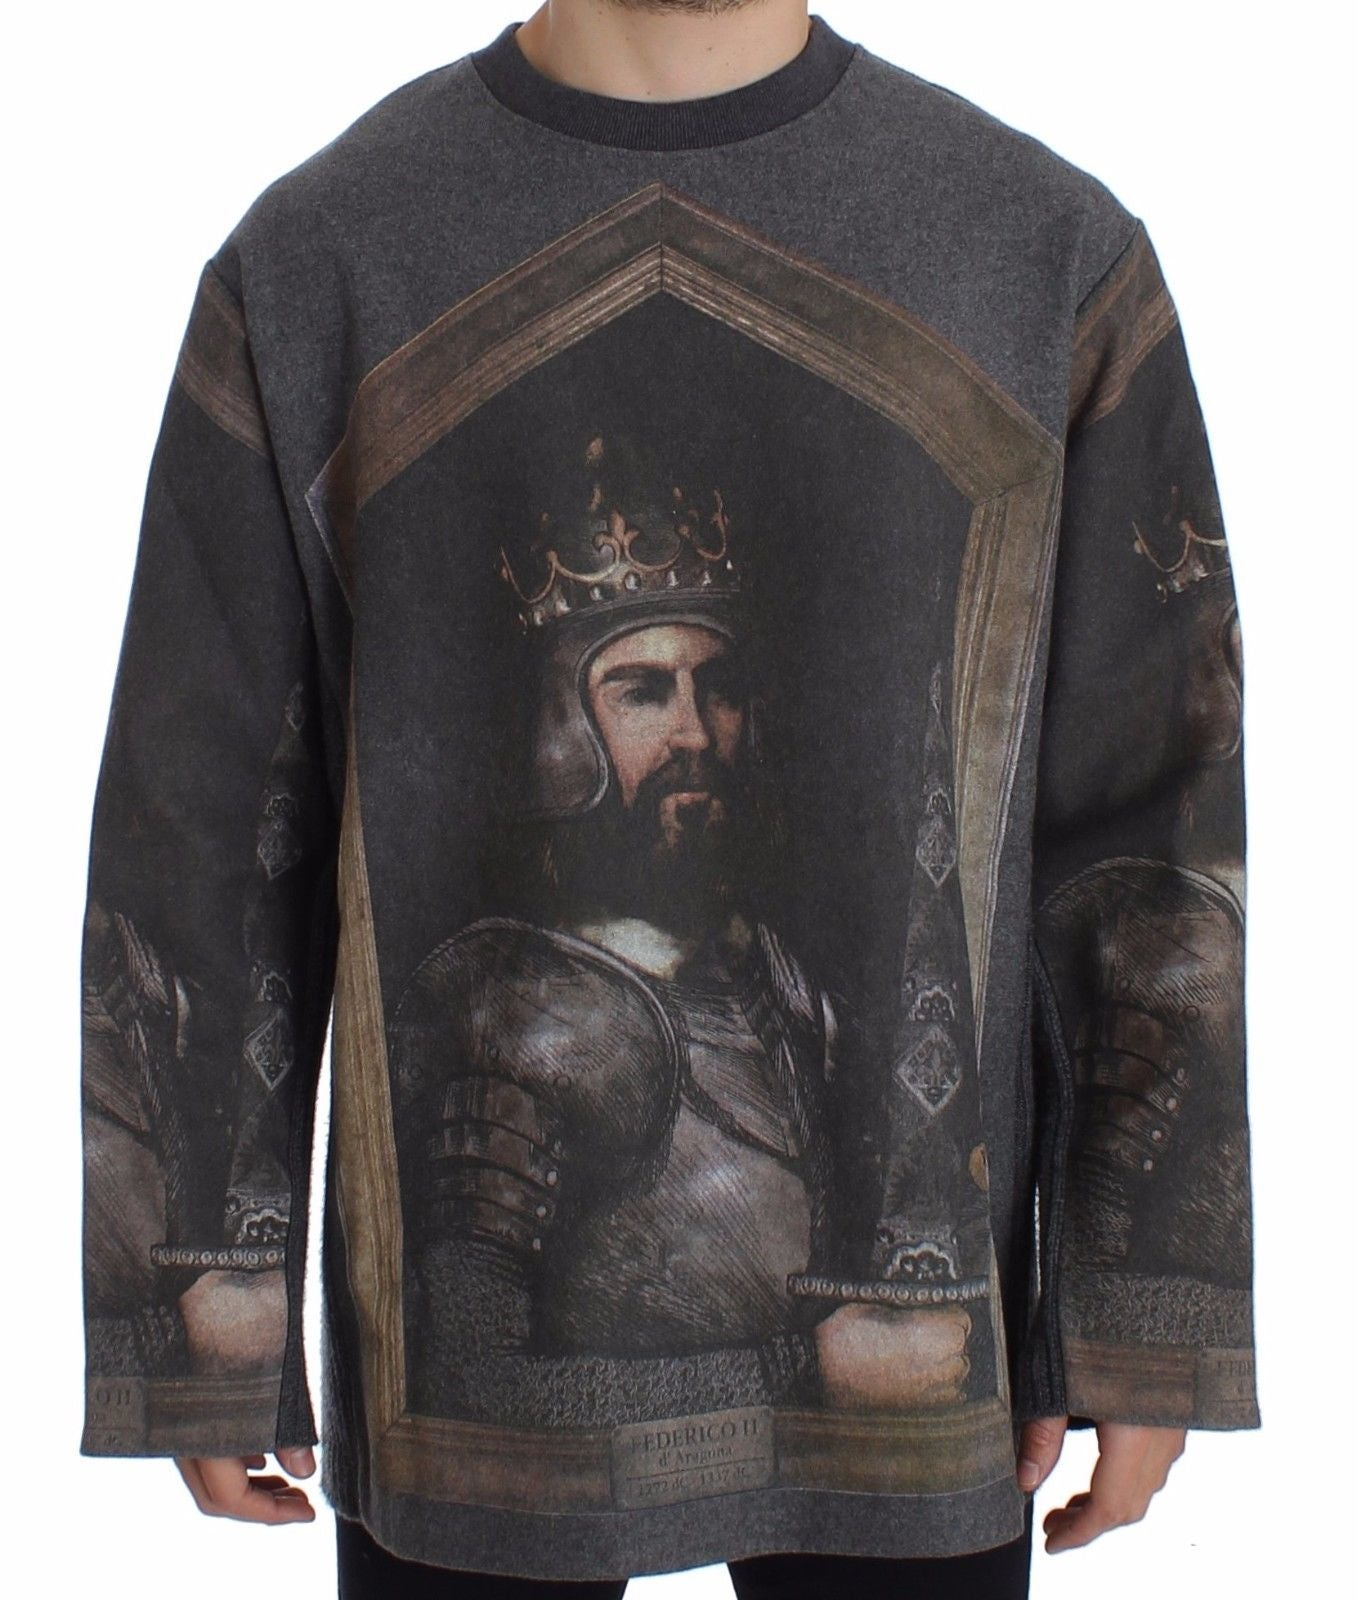 Dolce & Gabbana - Gray King FEDERICO Oversize Sweater Pullover